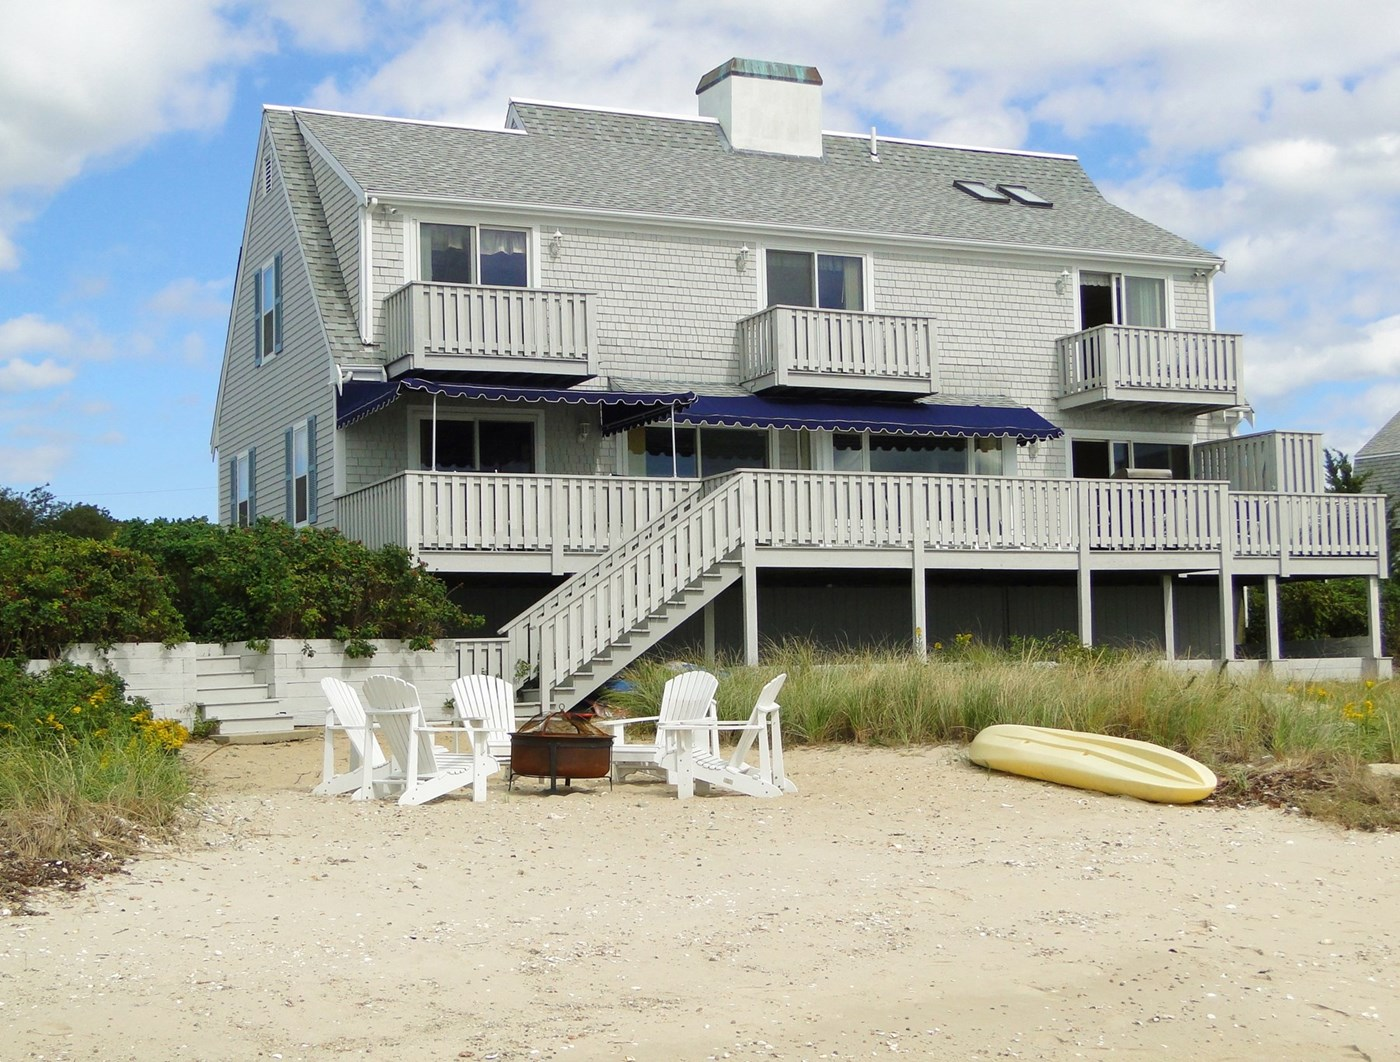 cape house photo shingle beach cod rental hyannis houses cedar cottage homes stock rentals massachusetts mash tidal